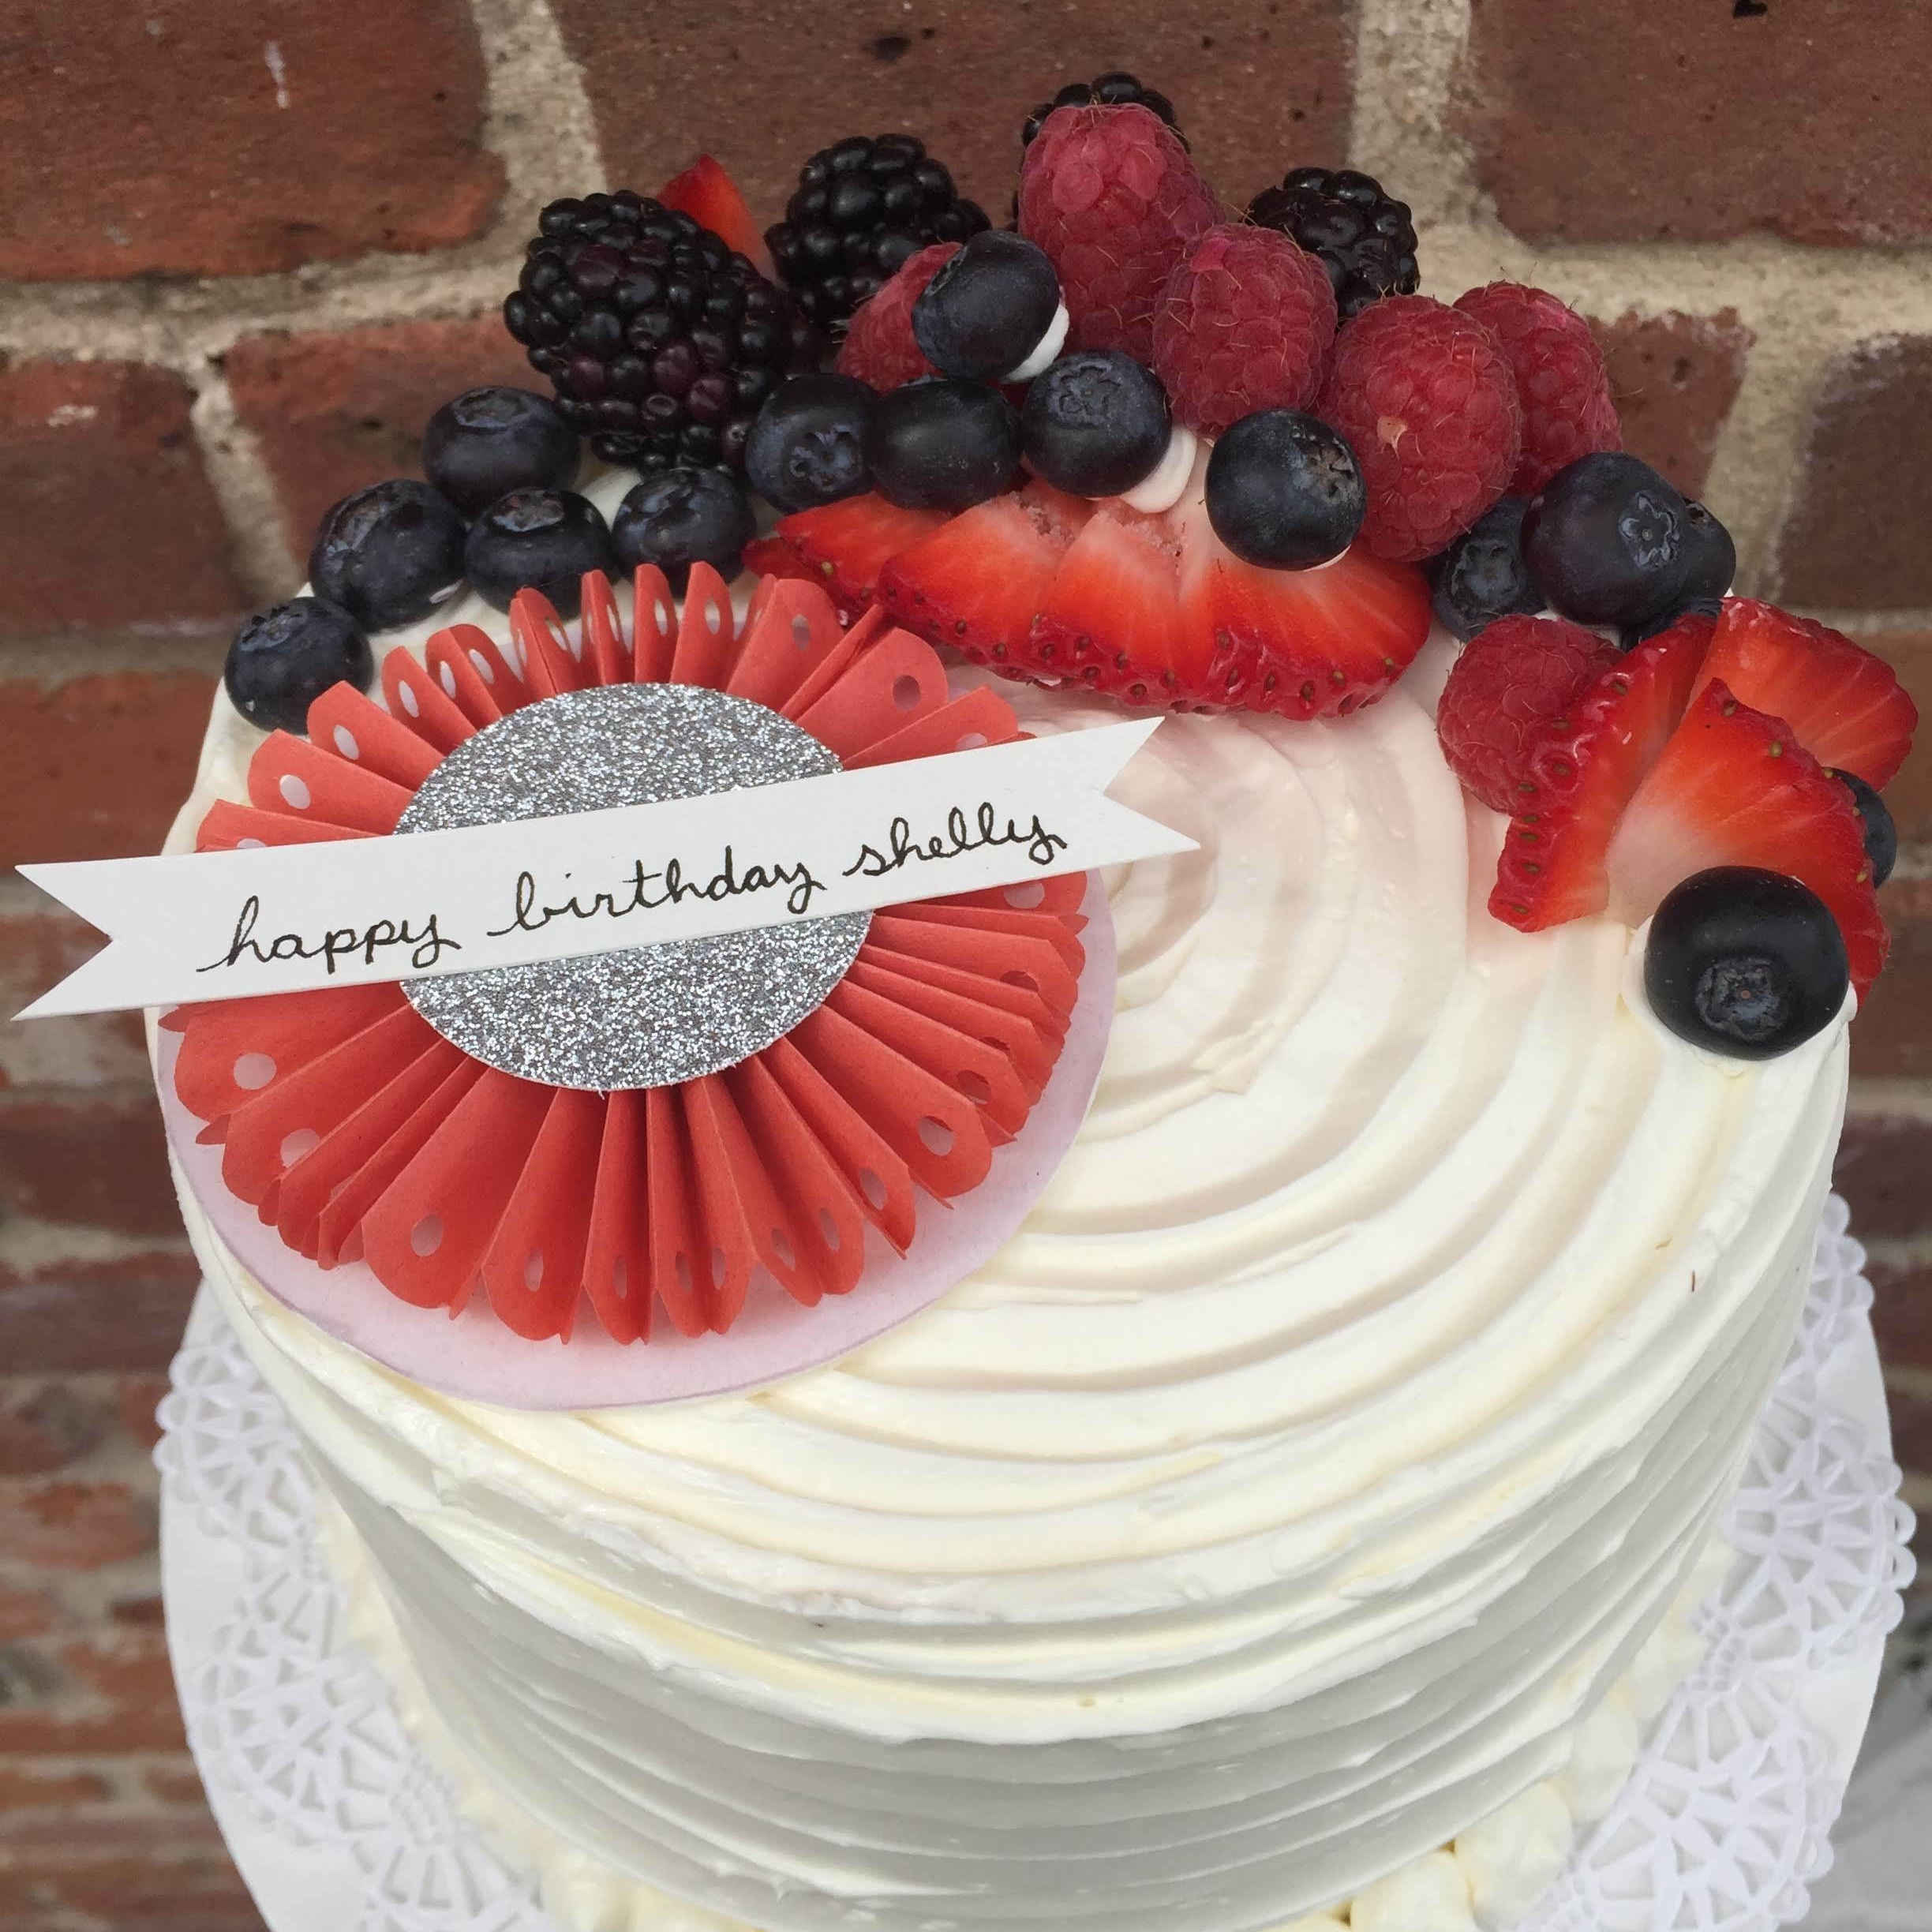 """Cakes - 8"""" & 10"""" layer cakeAssorted flavors by request"""